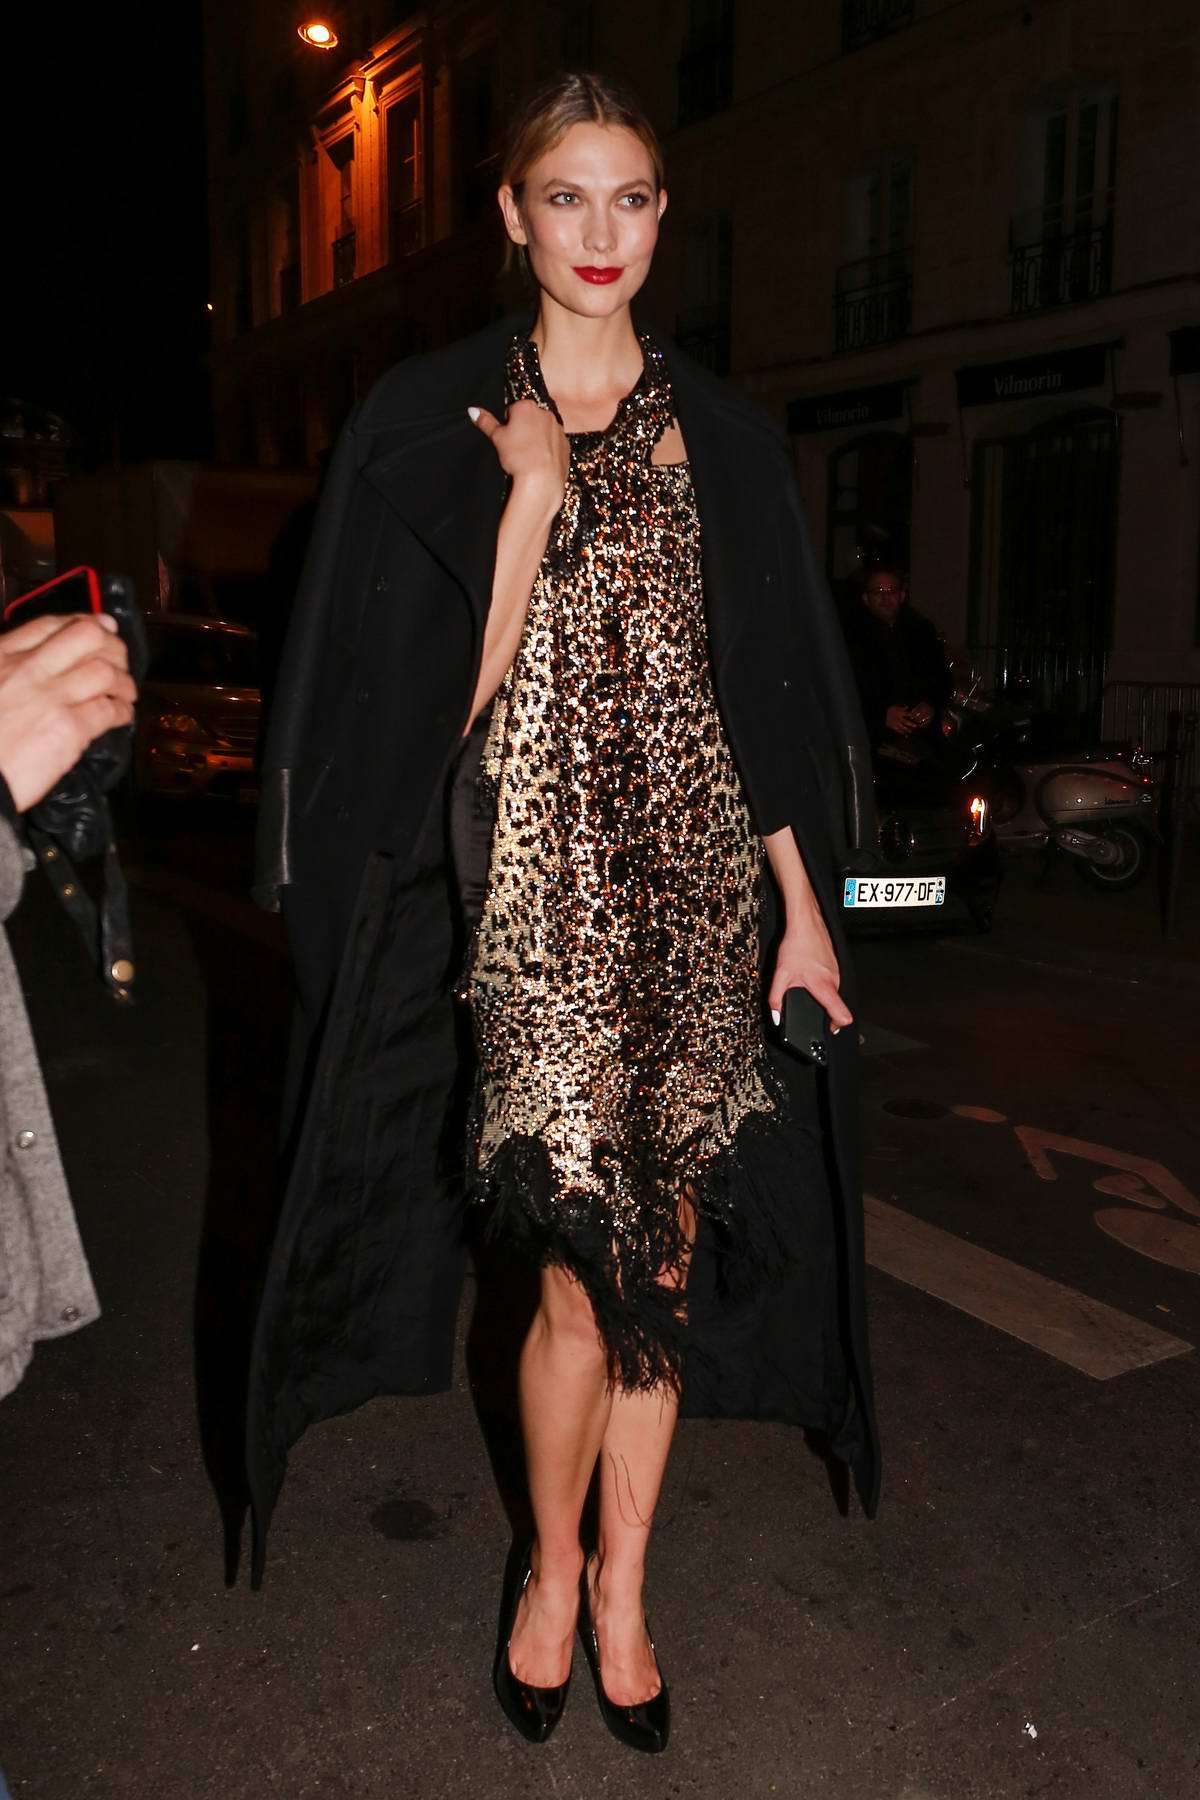 Karlie Kloss looks great in an animal print dress as she leaves the Jean Paul Gaultier show in Paris, France